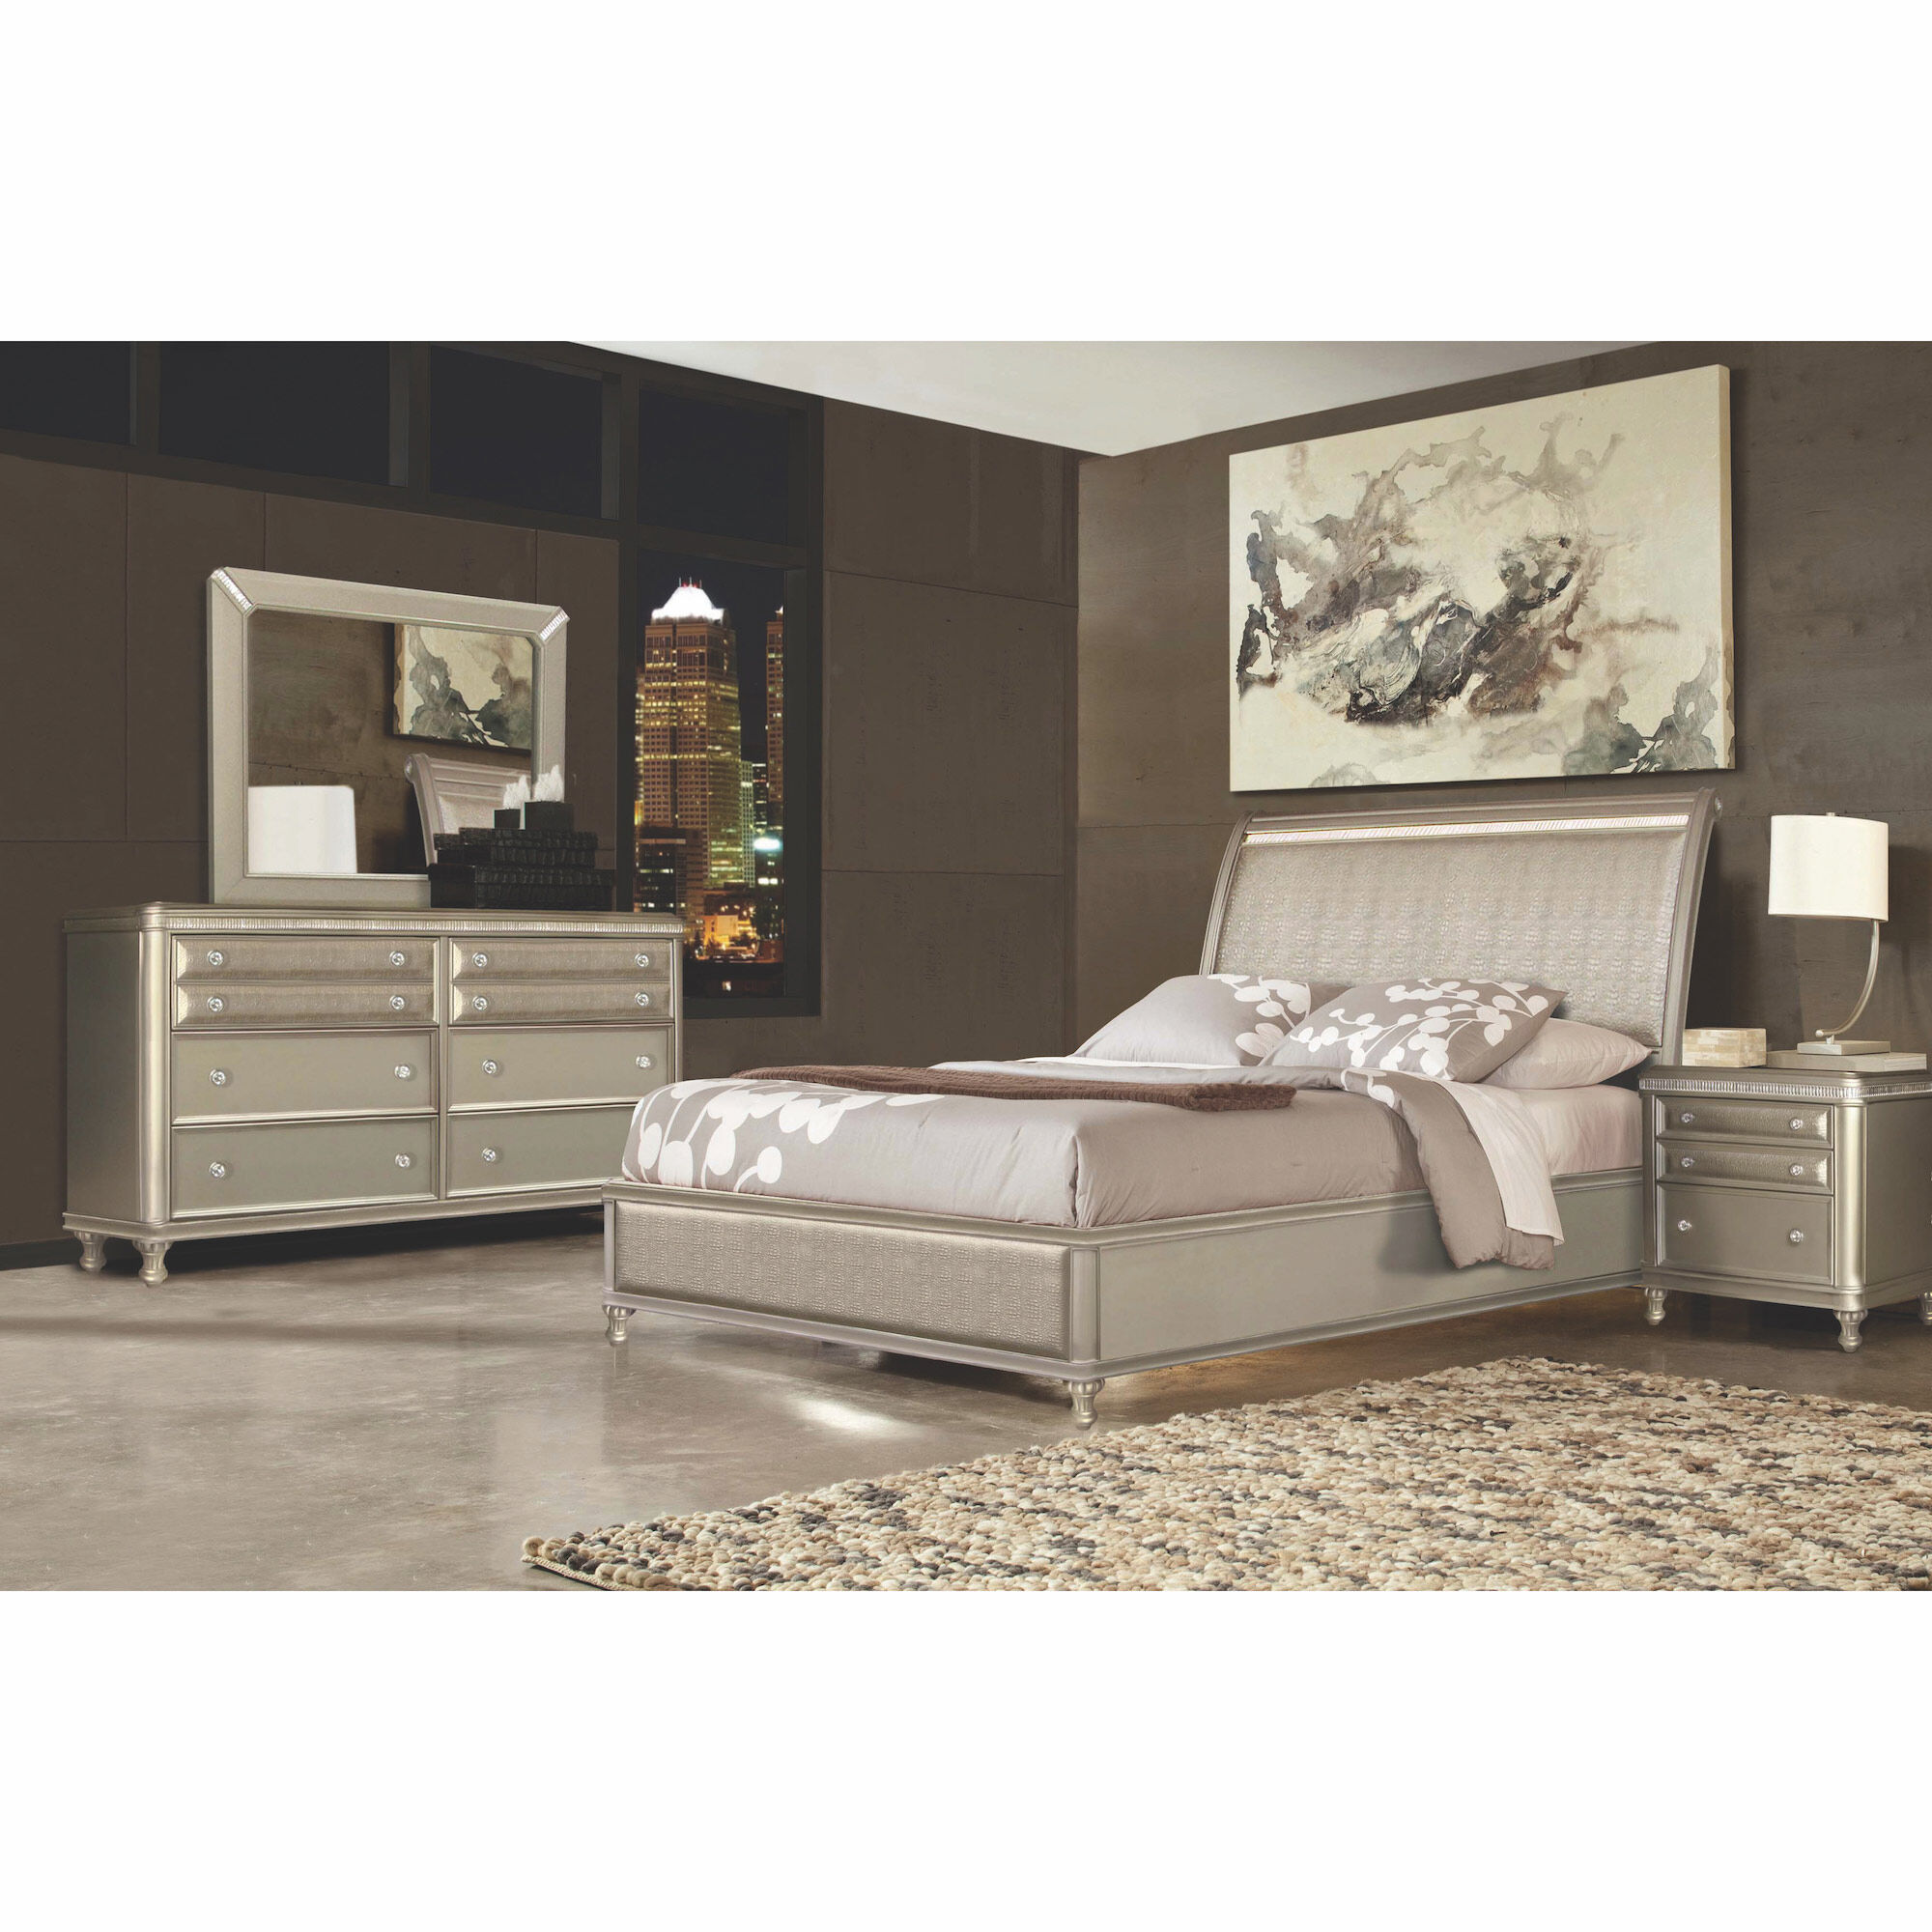 Superbe 7 Piece Glam Queen Bedroom Collection. Riversedge Furniture